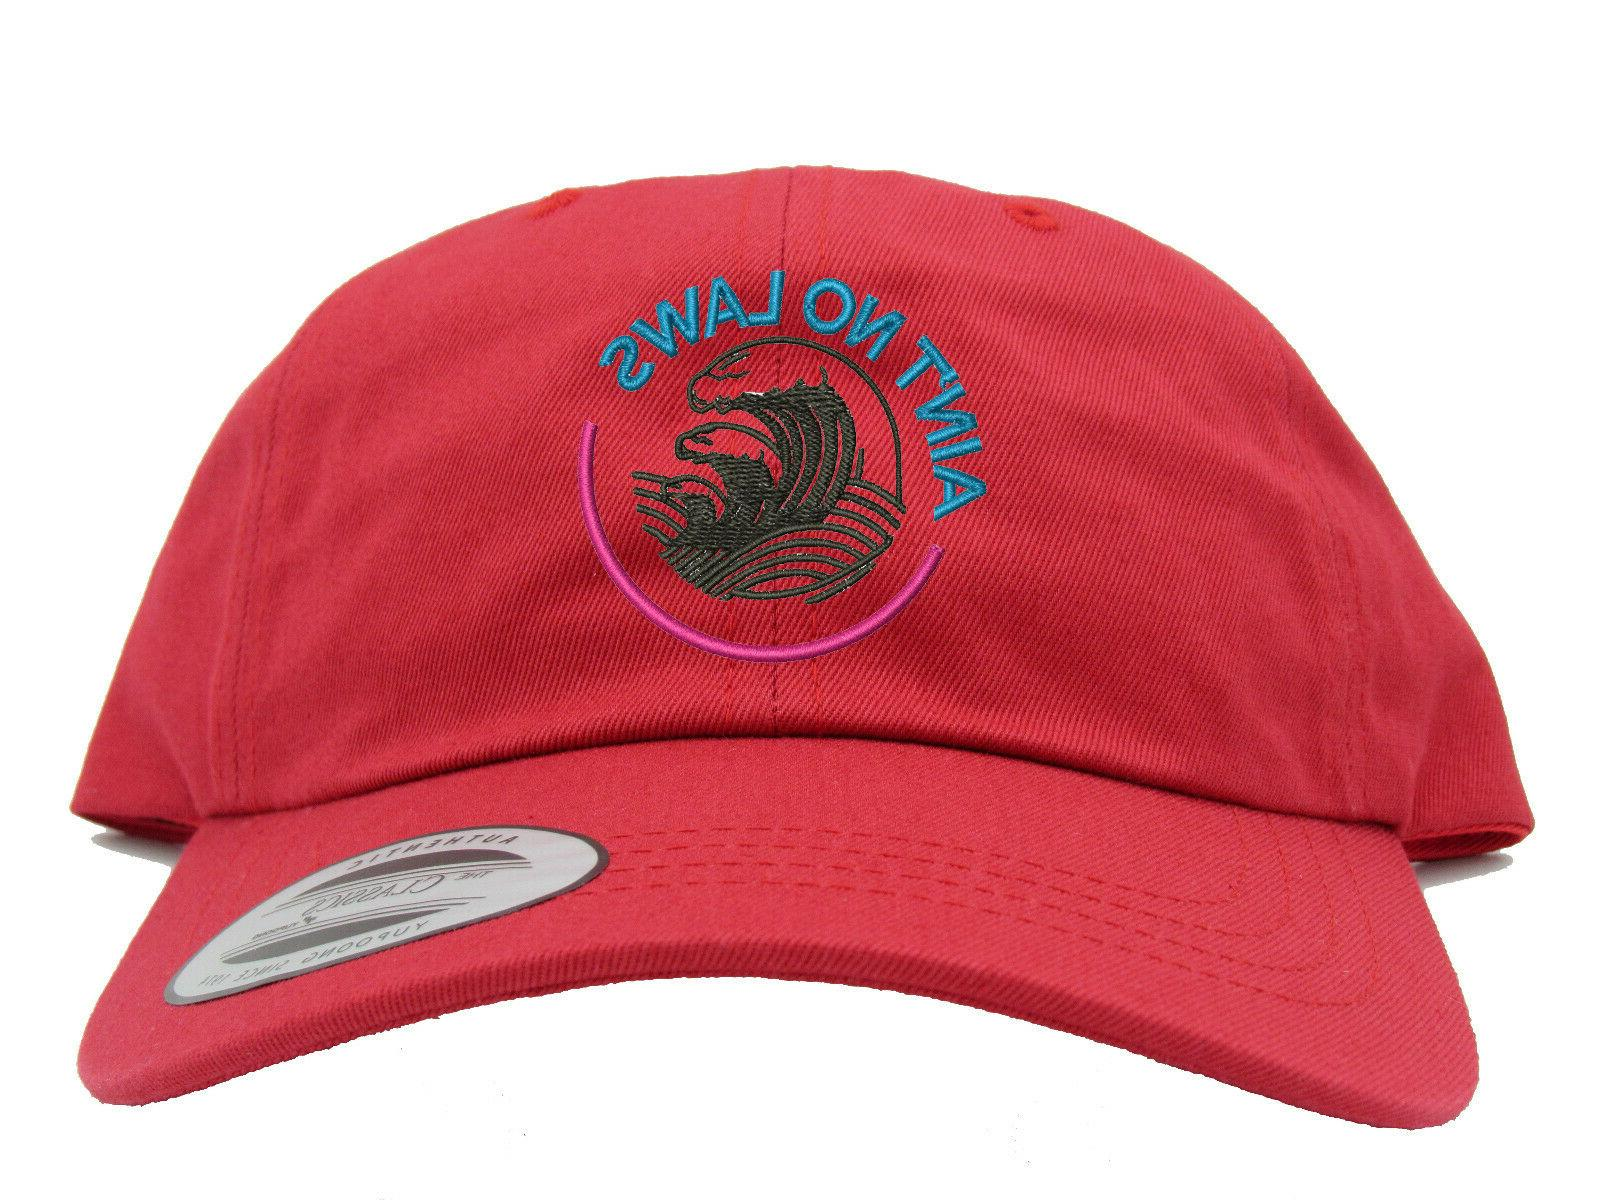 White No Laws When Claws Summer Embroidered Hat